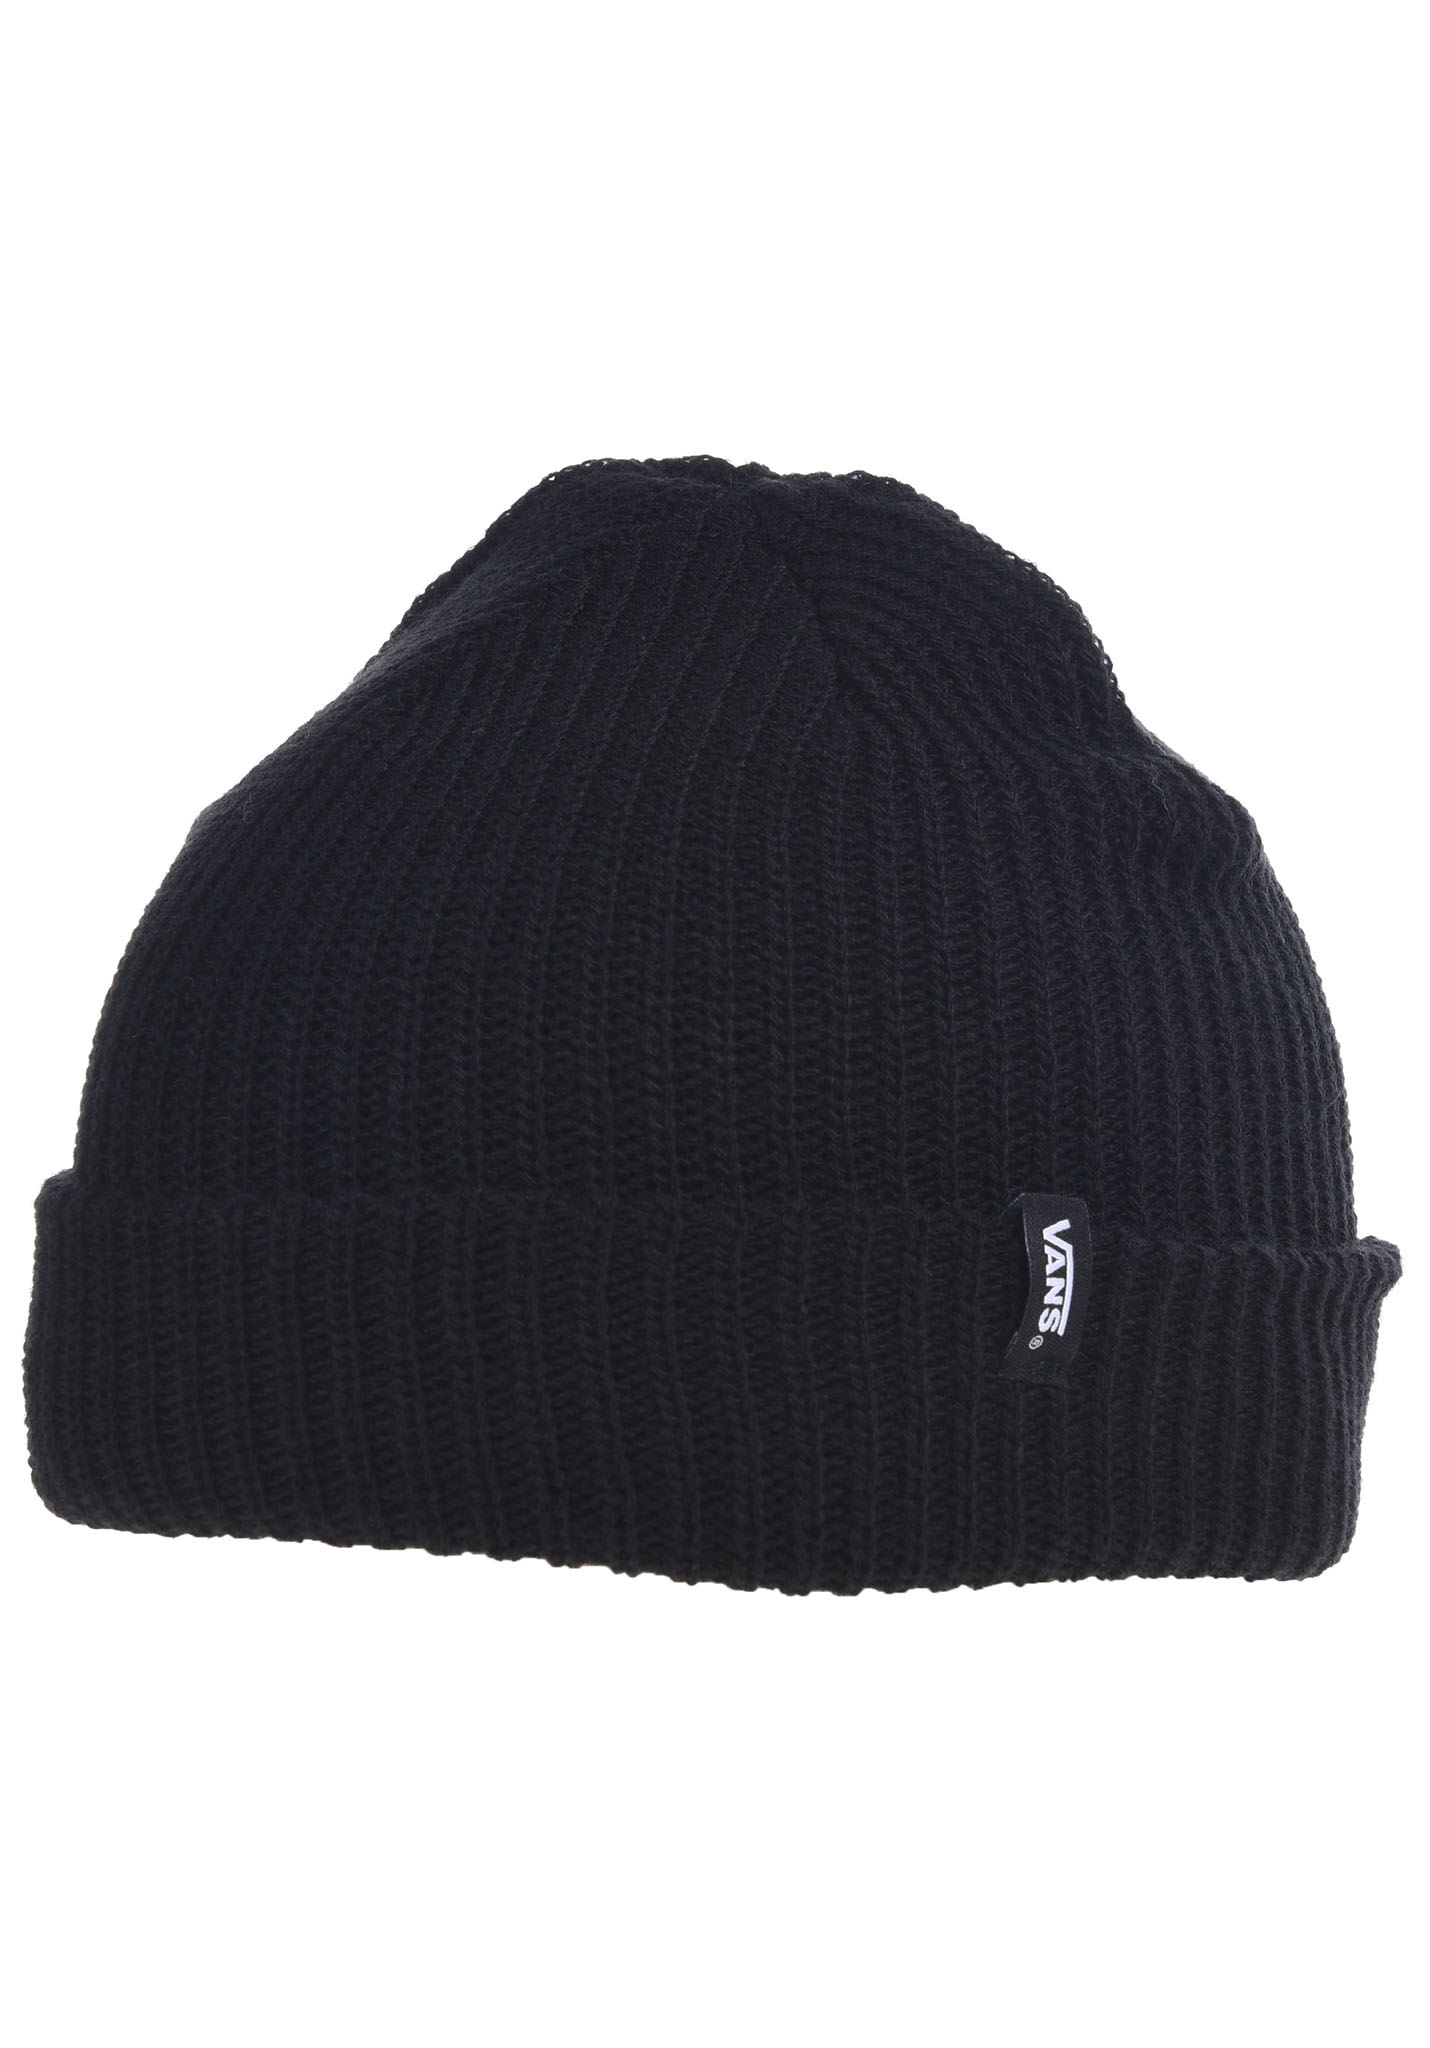 a94aa4abd6 Vans Mismoedig - Beanie - Black - Planet Sports